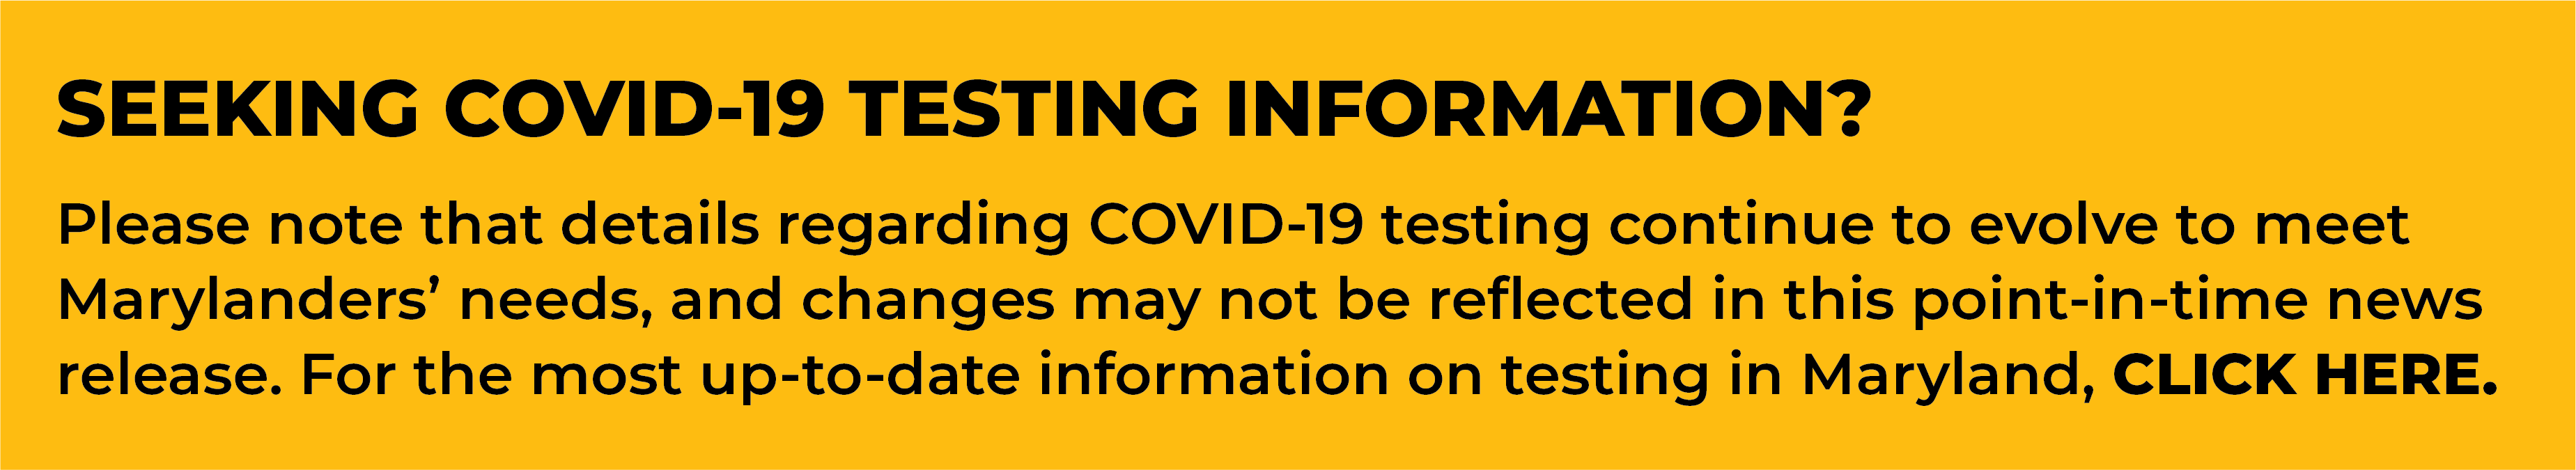 Please note that details regarding COVID-19 testing continue to evolve to meet Marylanders' needs, and changes may not be reflected in this point-in-time news release. For the most up-to-date information on testing in Maryland, click here.